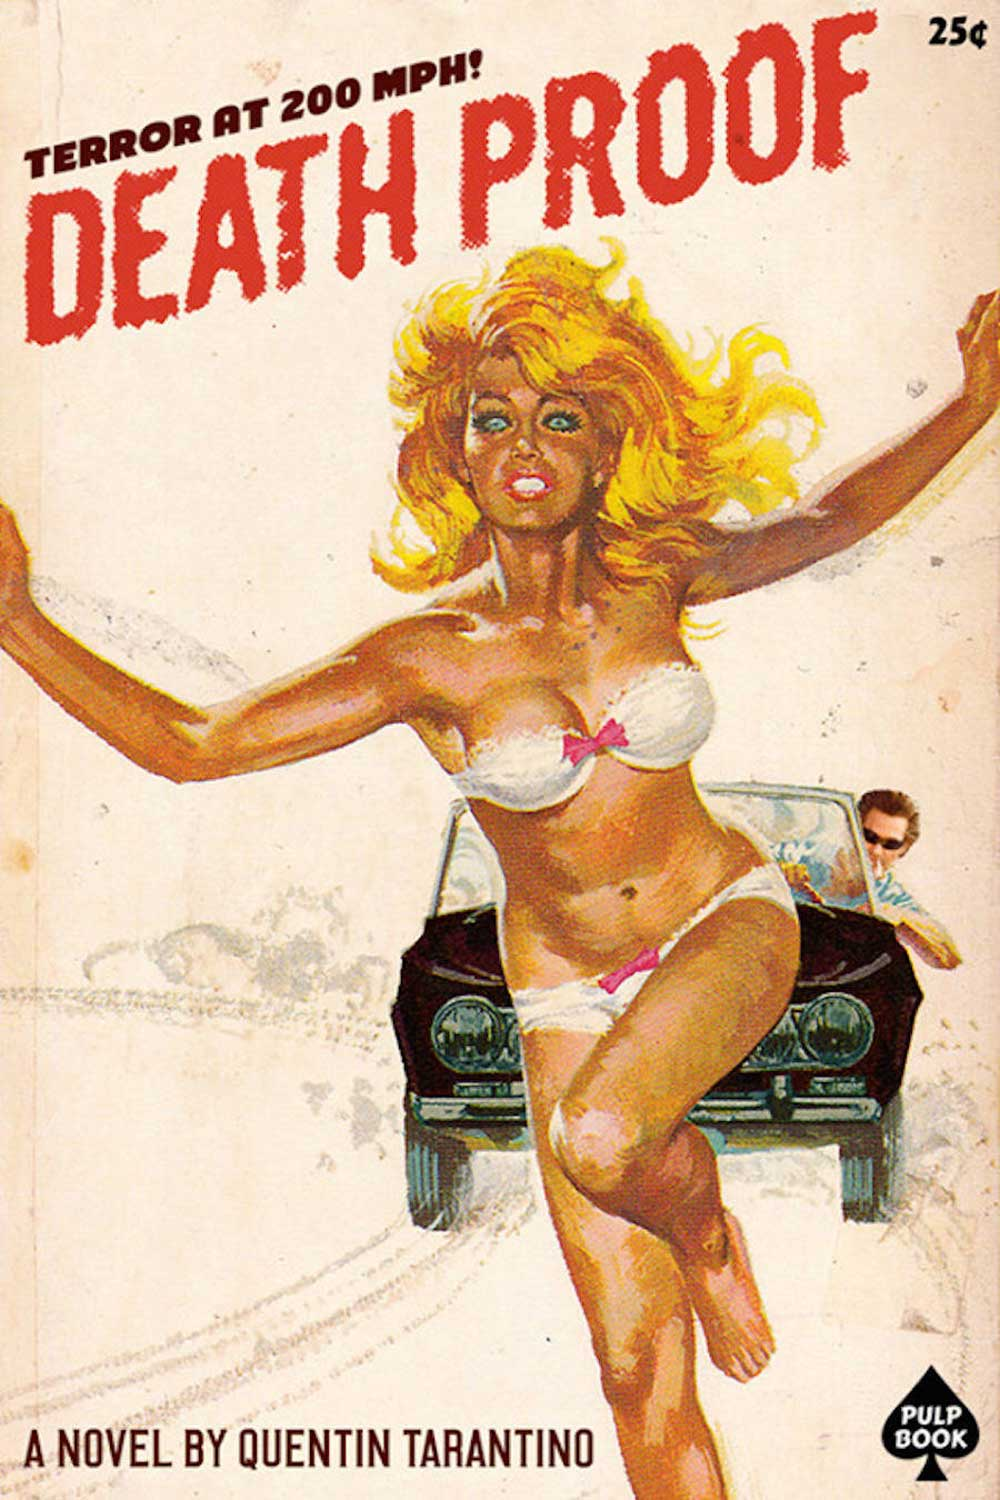 Death Proof by Ads Libitum